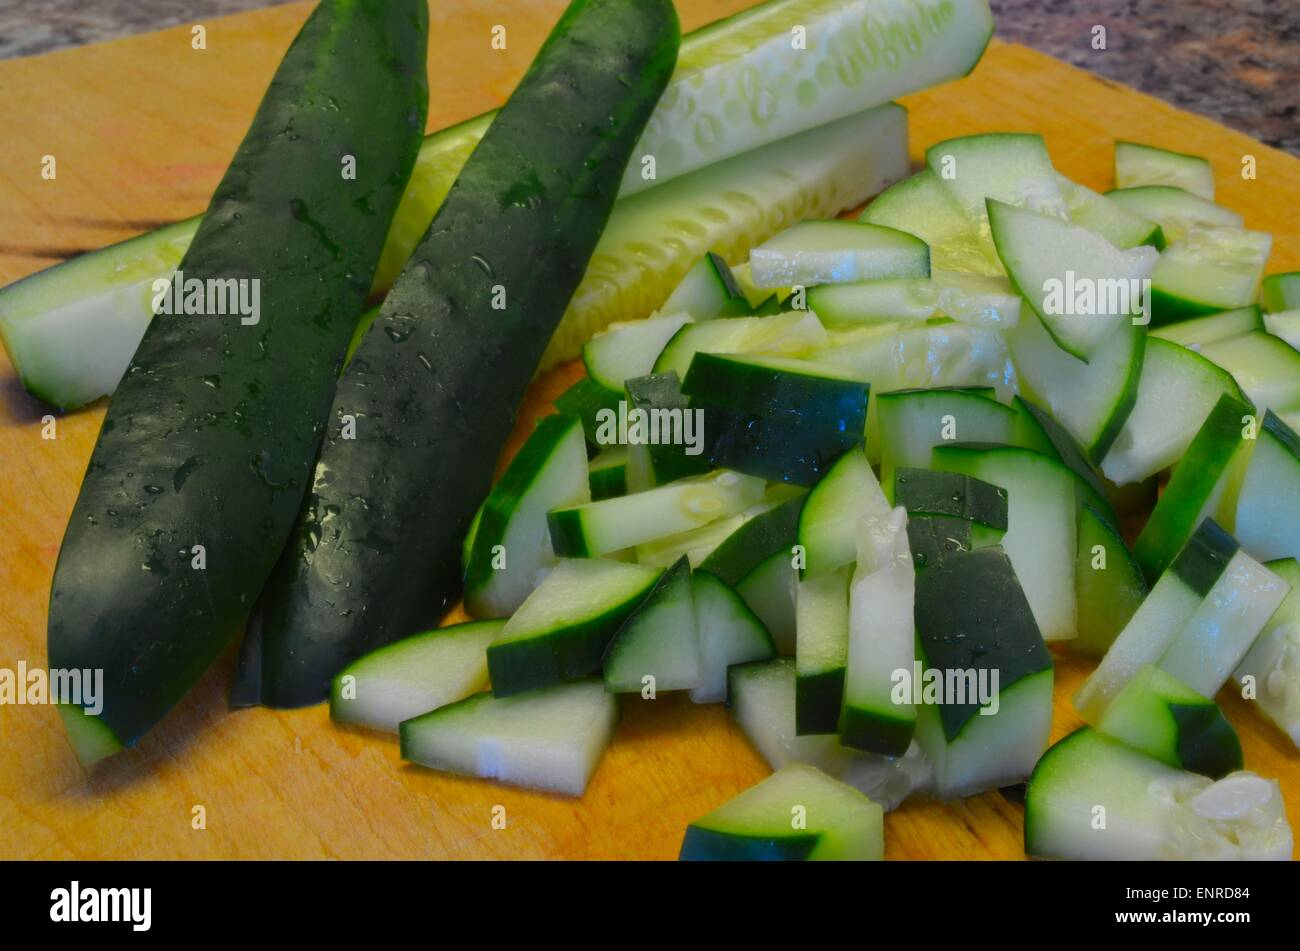 Freshly sliced and cut juicy cool cucumbers - Stock Image